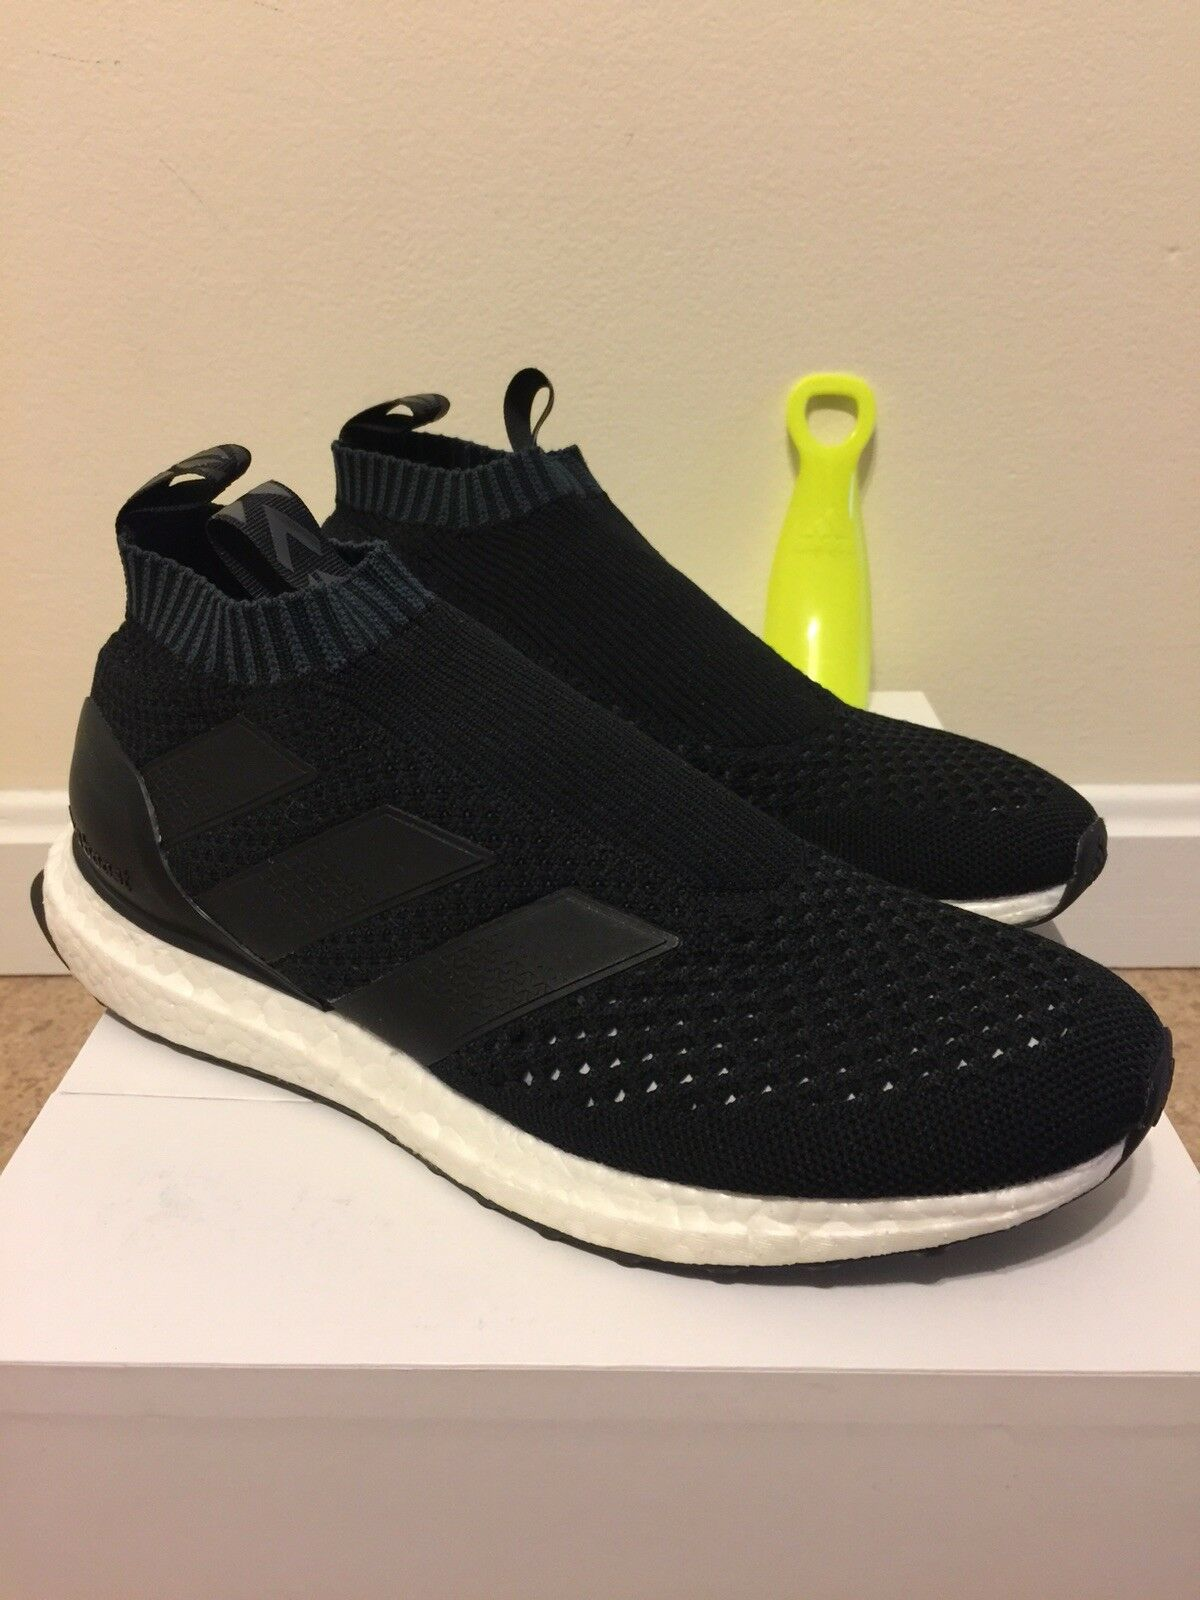 adidas ace 16   purecontrol 7,5 by1688 chaussettes ultra - boost chaussettes by1688 chaussures 2b2524